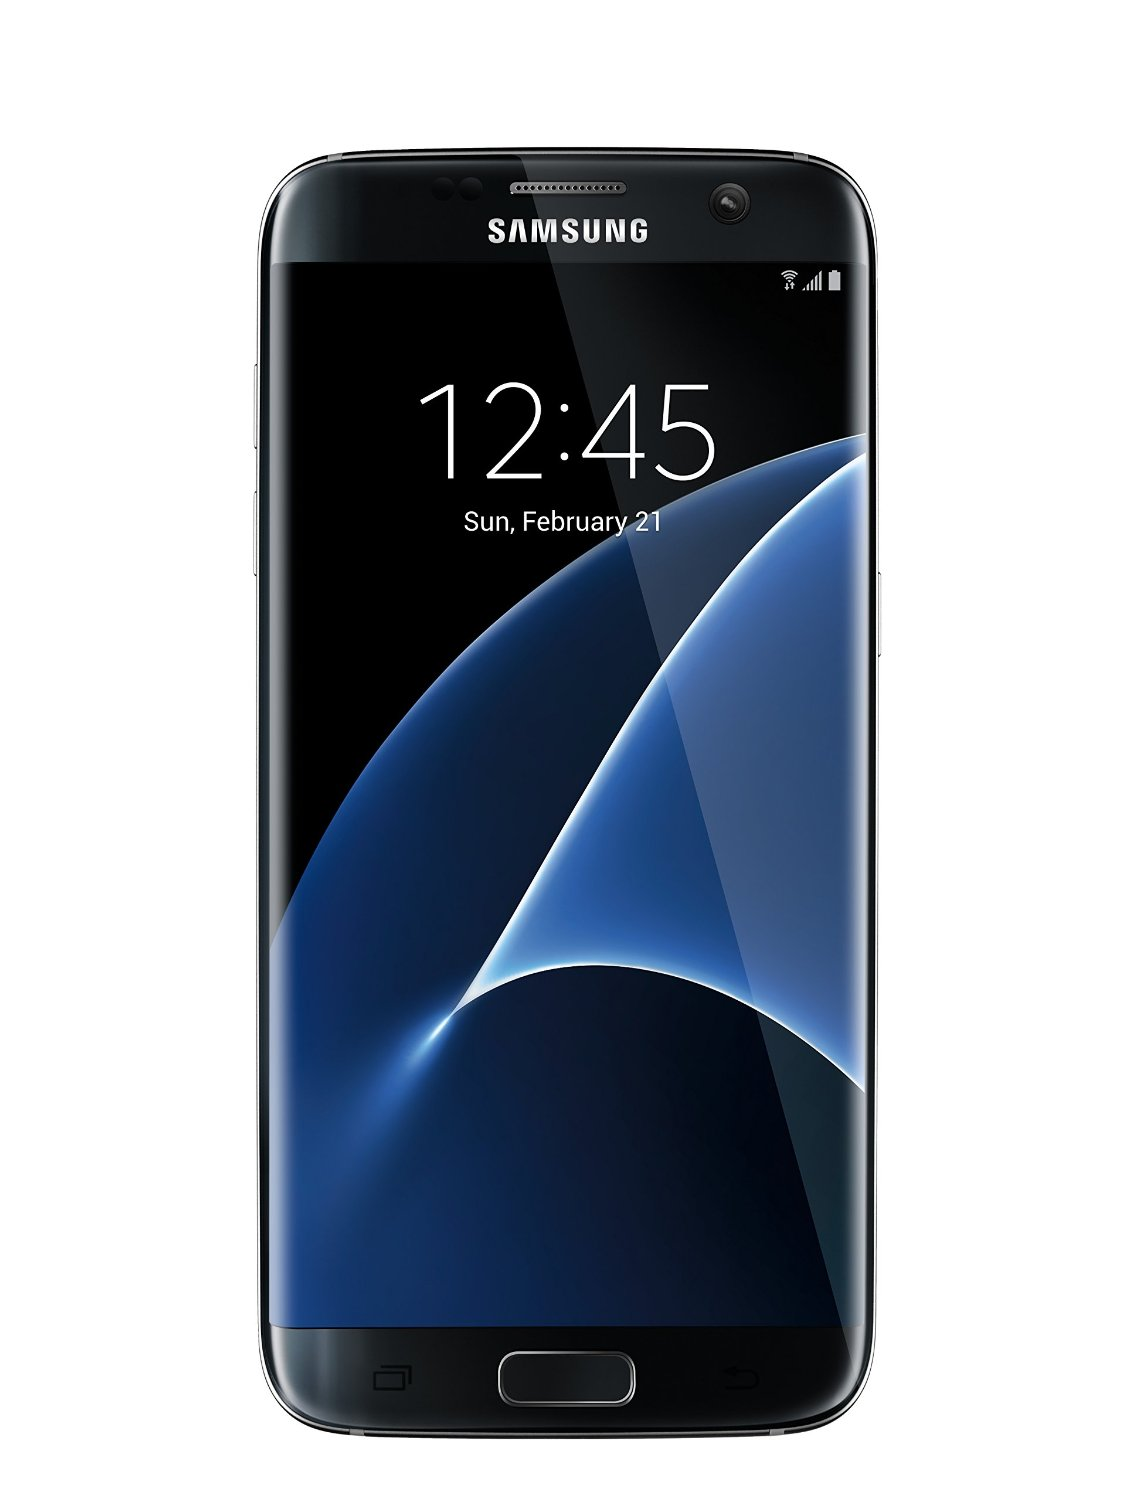 Samsung Galaxy S7 Edge G935F Unlocked Phone - Retail Packaging - Black Oynx (International Version)